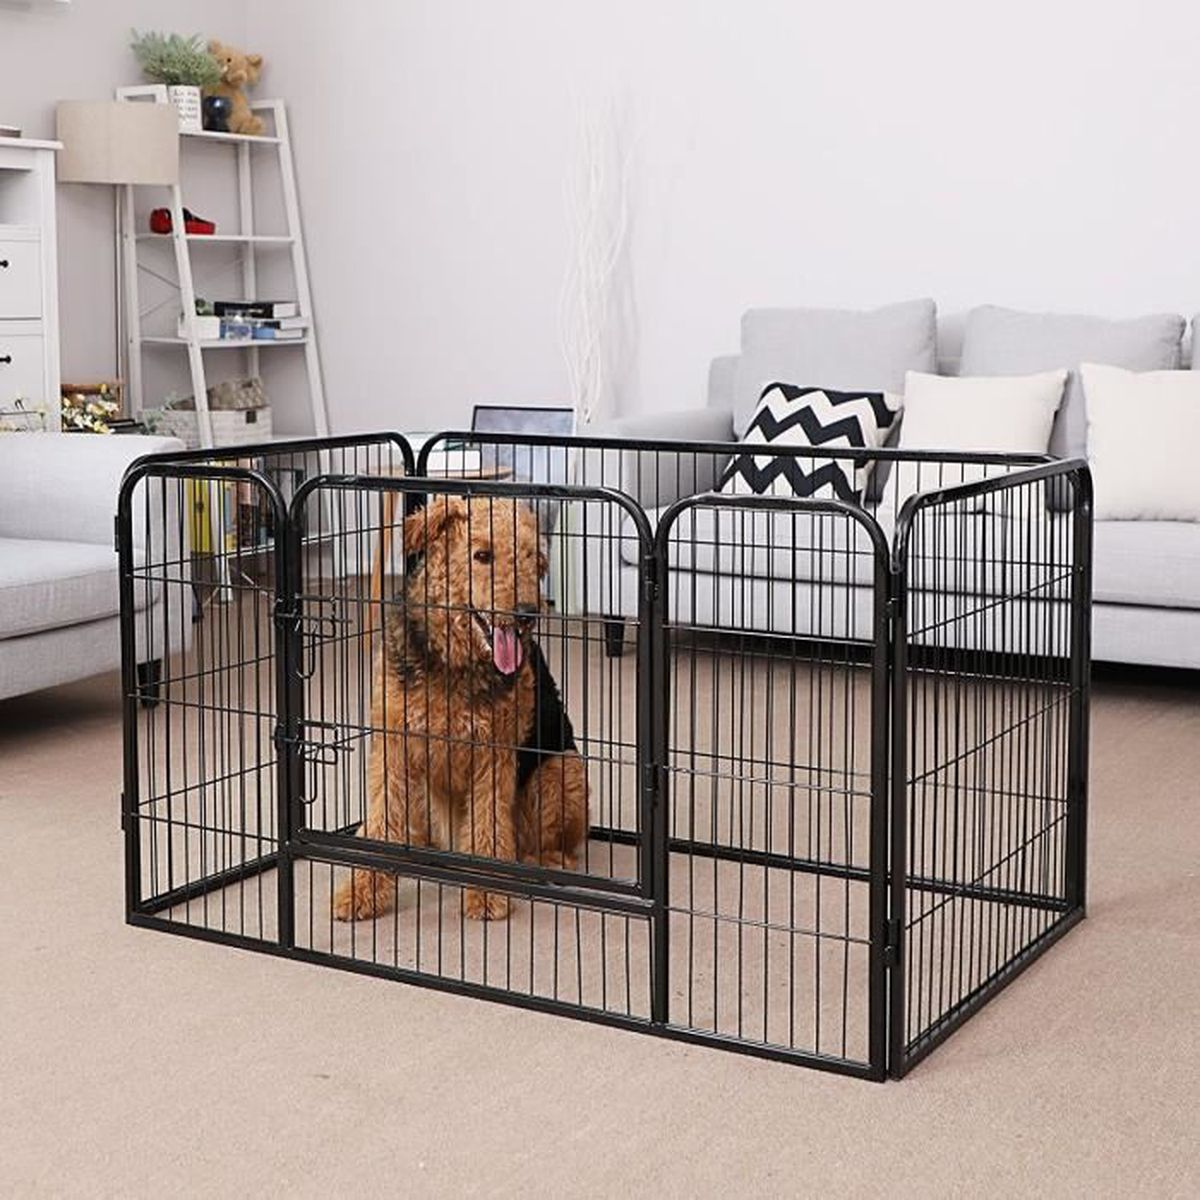 songmics parc pour chien enclos en fer pour animaux de compagnie amovible et transportable noir. Black Bedroom Furniture Sets. Home Design Ideas